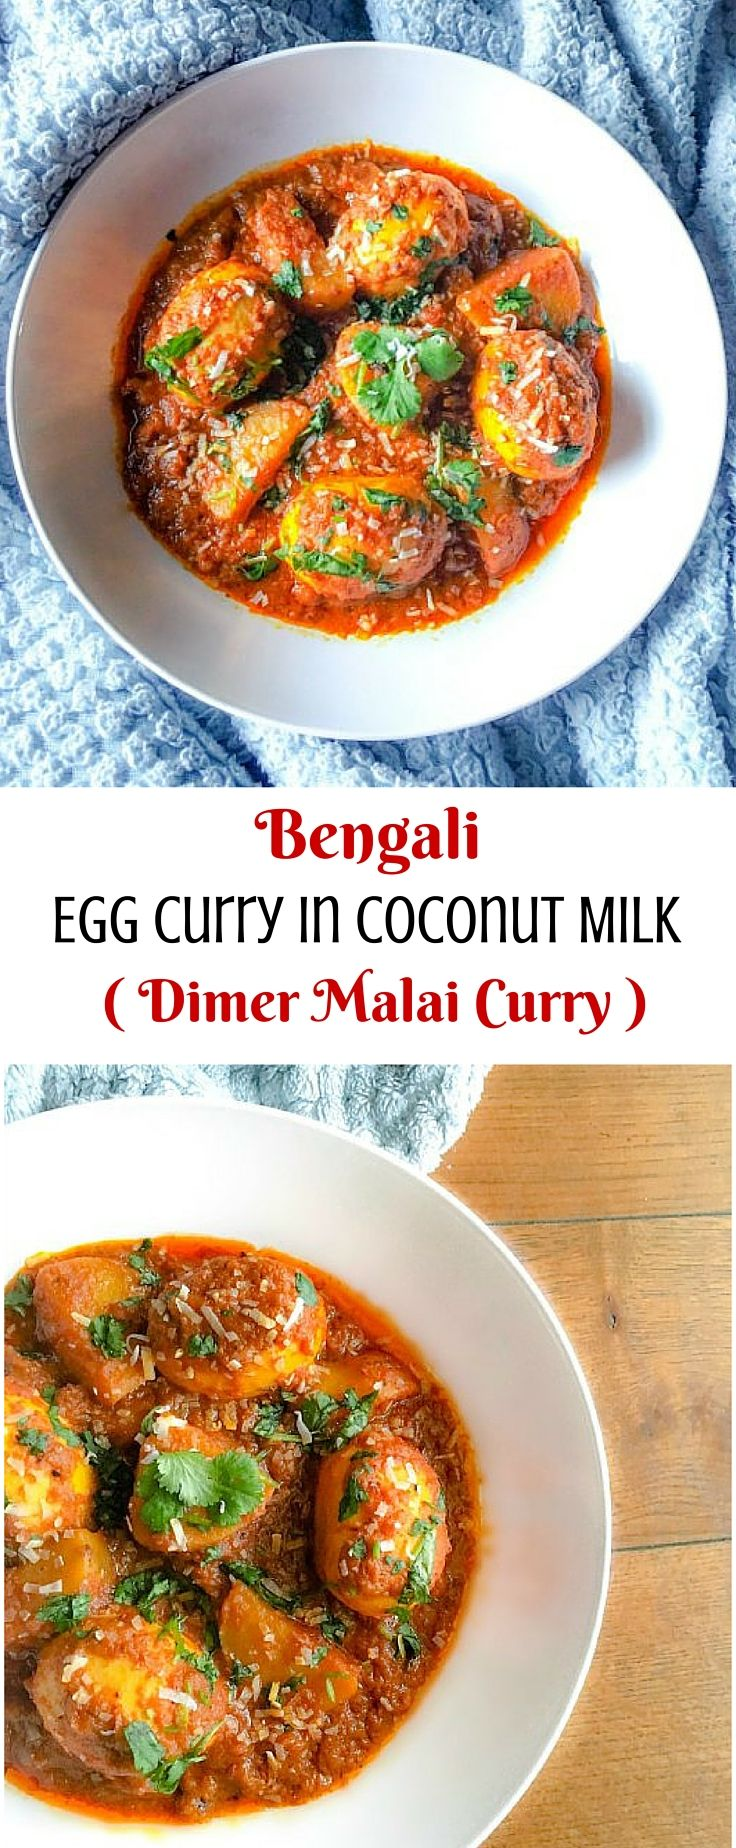 Bengali Egg Curry in Coconut Milk (Dimer Malai Curry) : #recipes #bengali #egg #curry #glutenfree #coconut